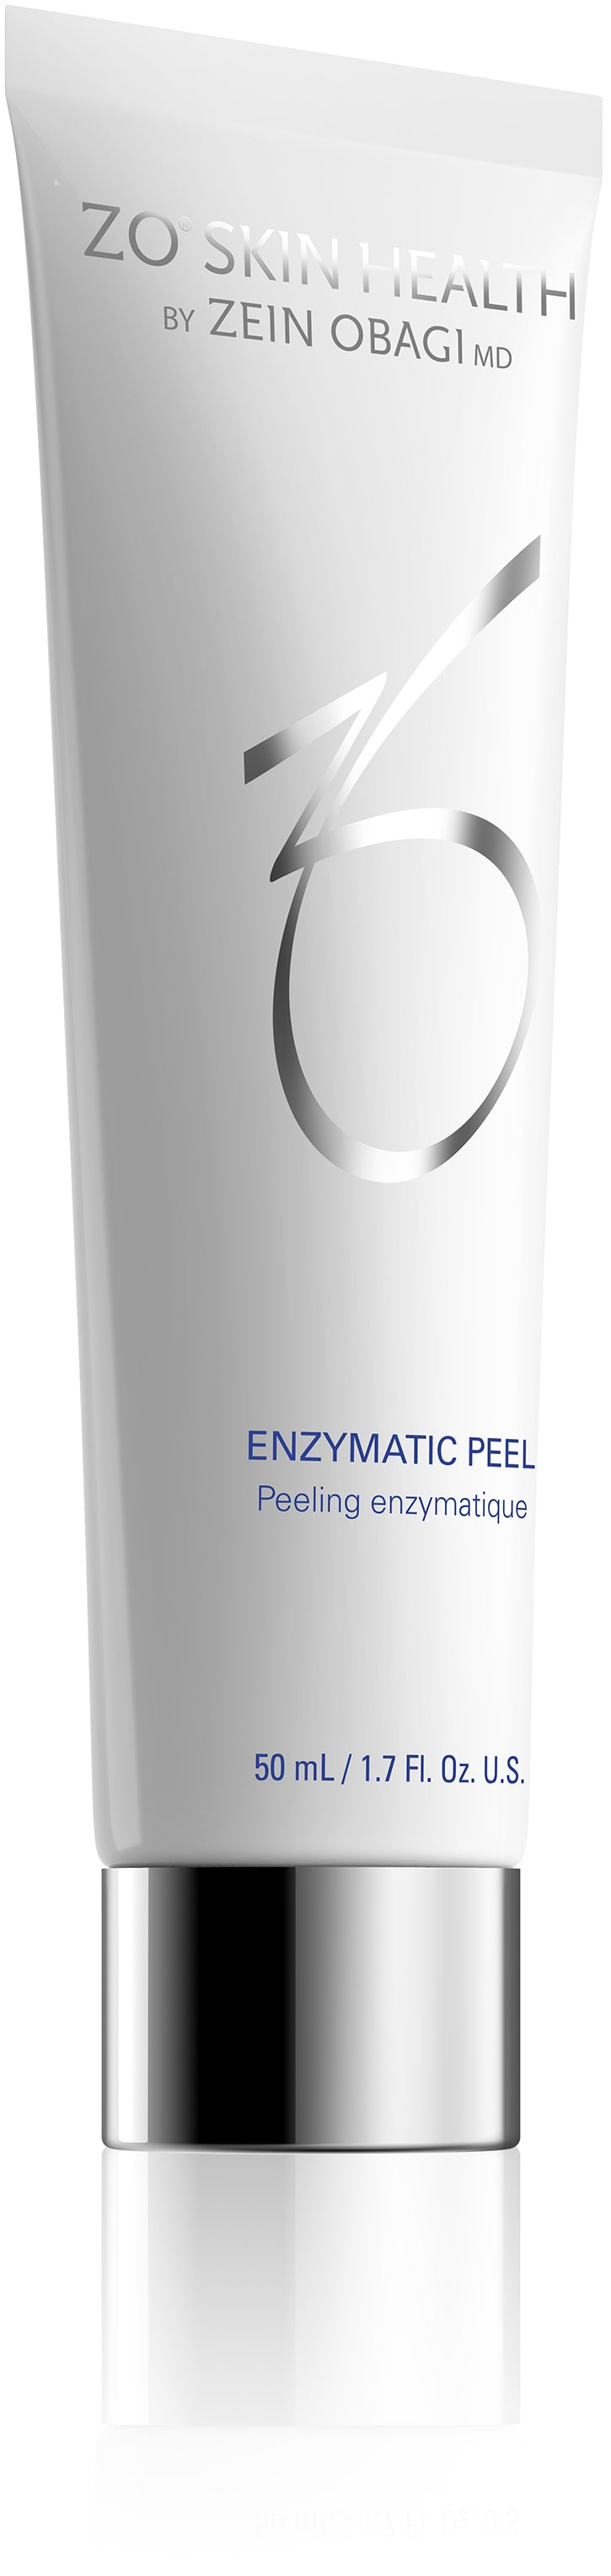 ZO Enzymatic Peel 50mL